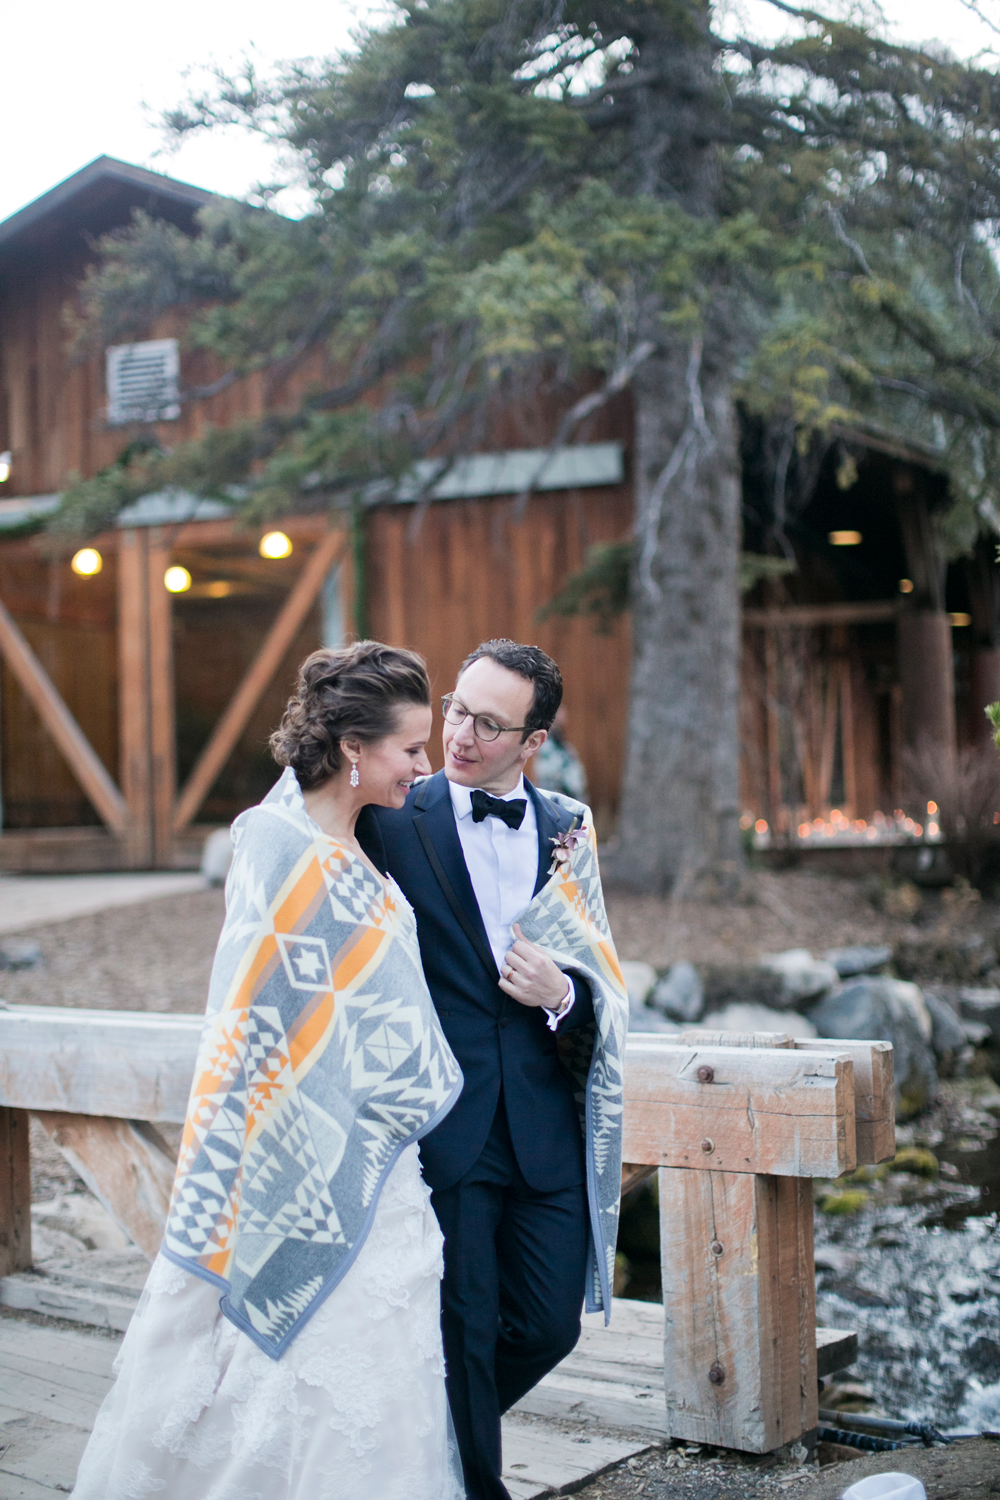 The couple, wrapped in a Pendleton blanket, walks the venue grounds.